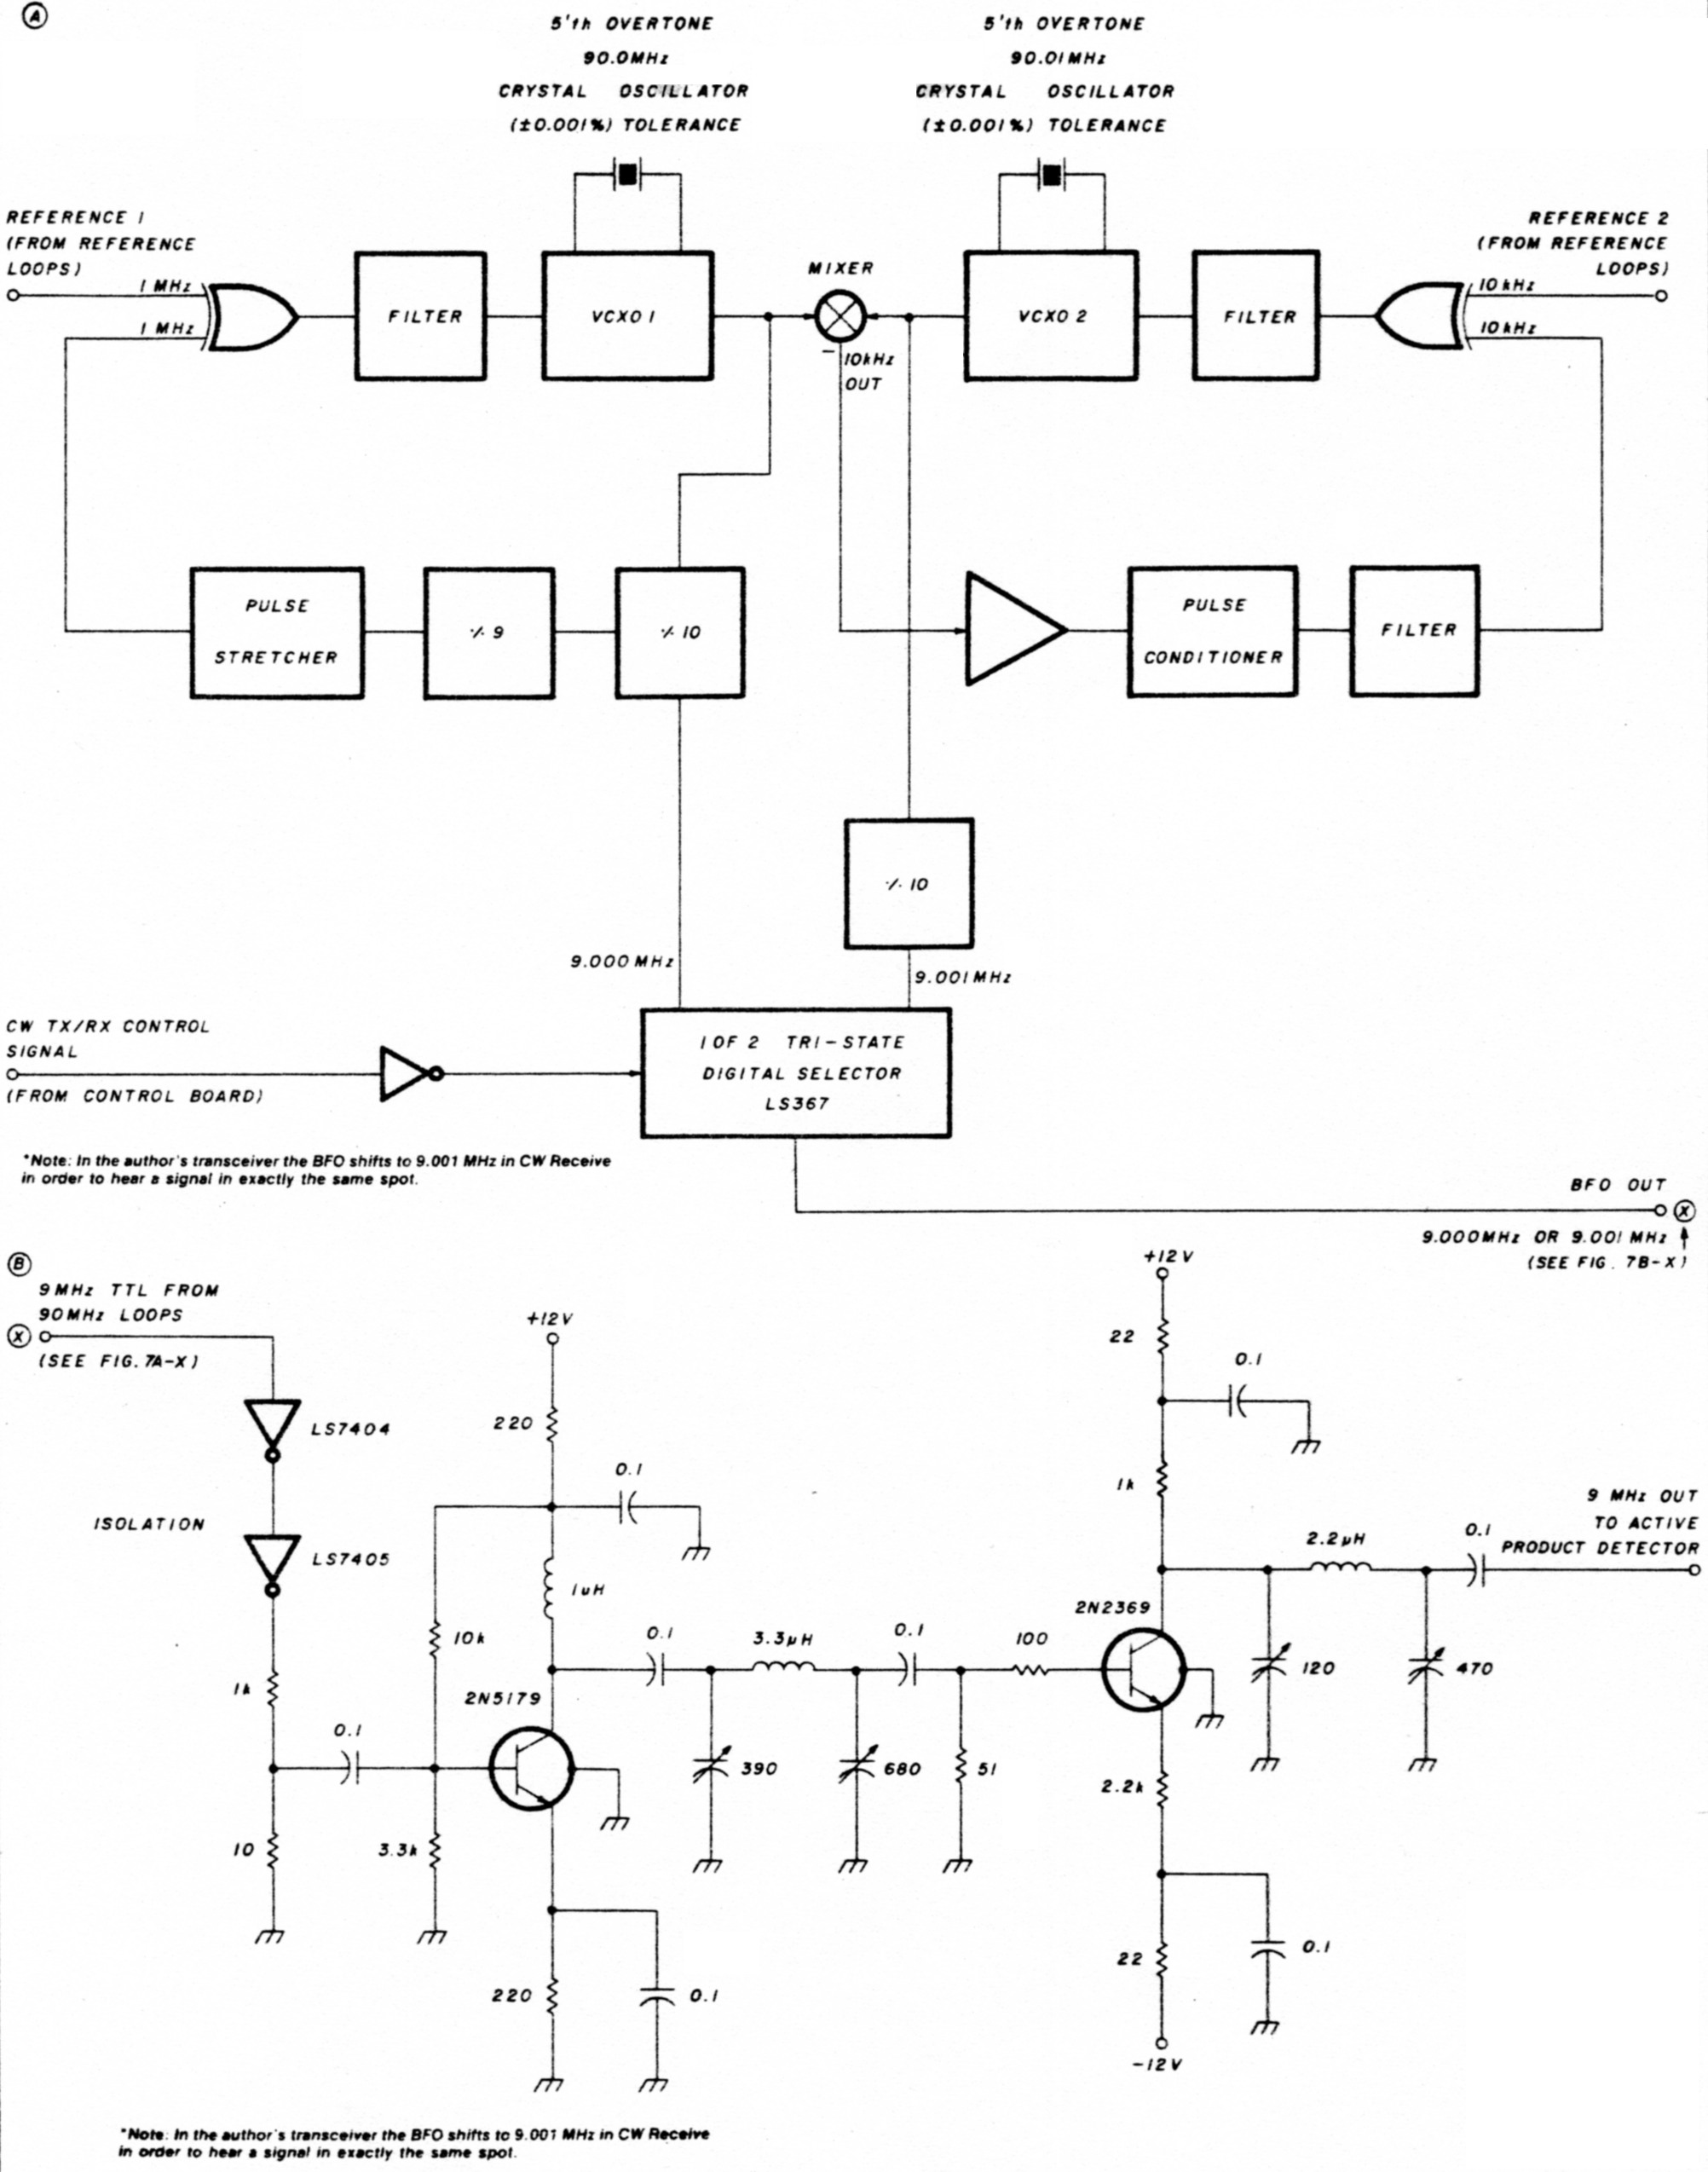 High Stability Local Oscillators For Microwave Receivers And Other Oscillator With Fixed Frequency Variable Duty Cycle Circuit A Block Diagram Of An Elegant 9 Mhz Bfo As Used In Fully Synthesized Hf Transceiver The Signal Is Derived From Dual 90 Phase Locked Loop Similar